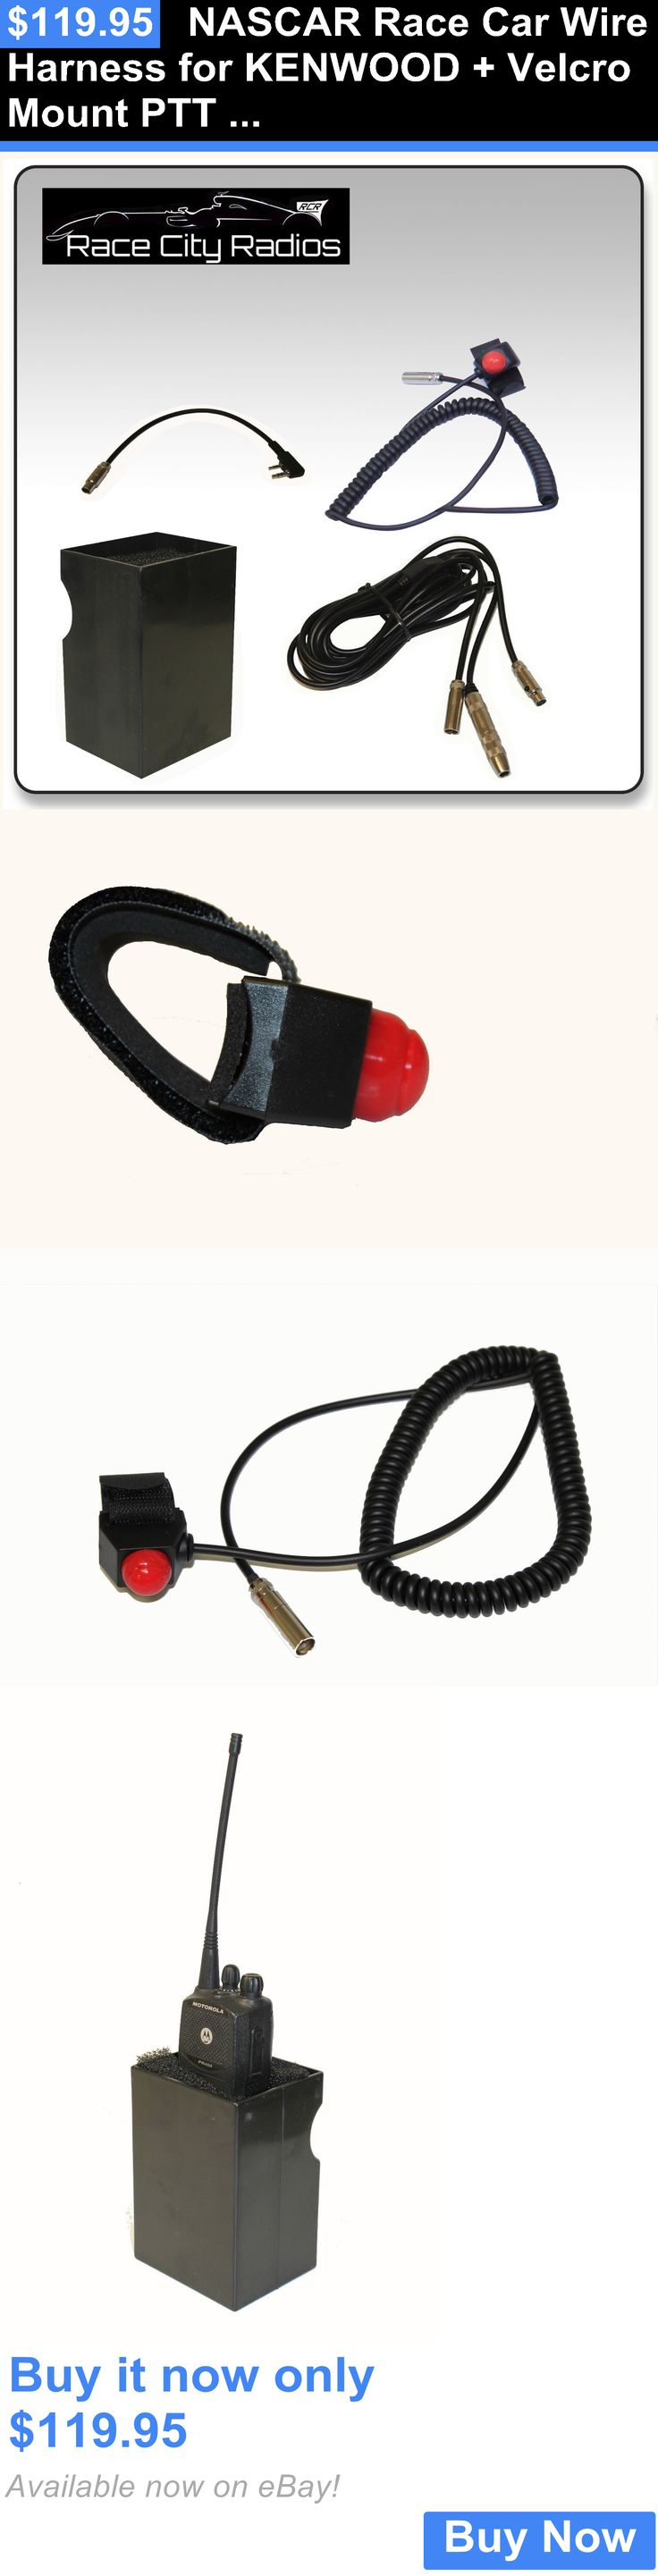 Walkie Talkie Two-Way Antennas: Nascar Race Car Wire Harness For Kenwood + Velcro Mount Ptt Switch + Radio Box BUY IT NOW ONLY: $119.95